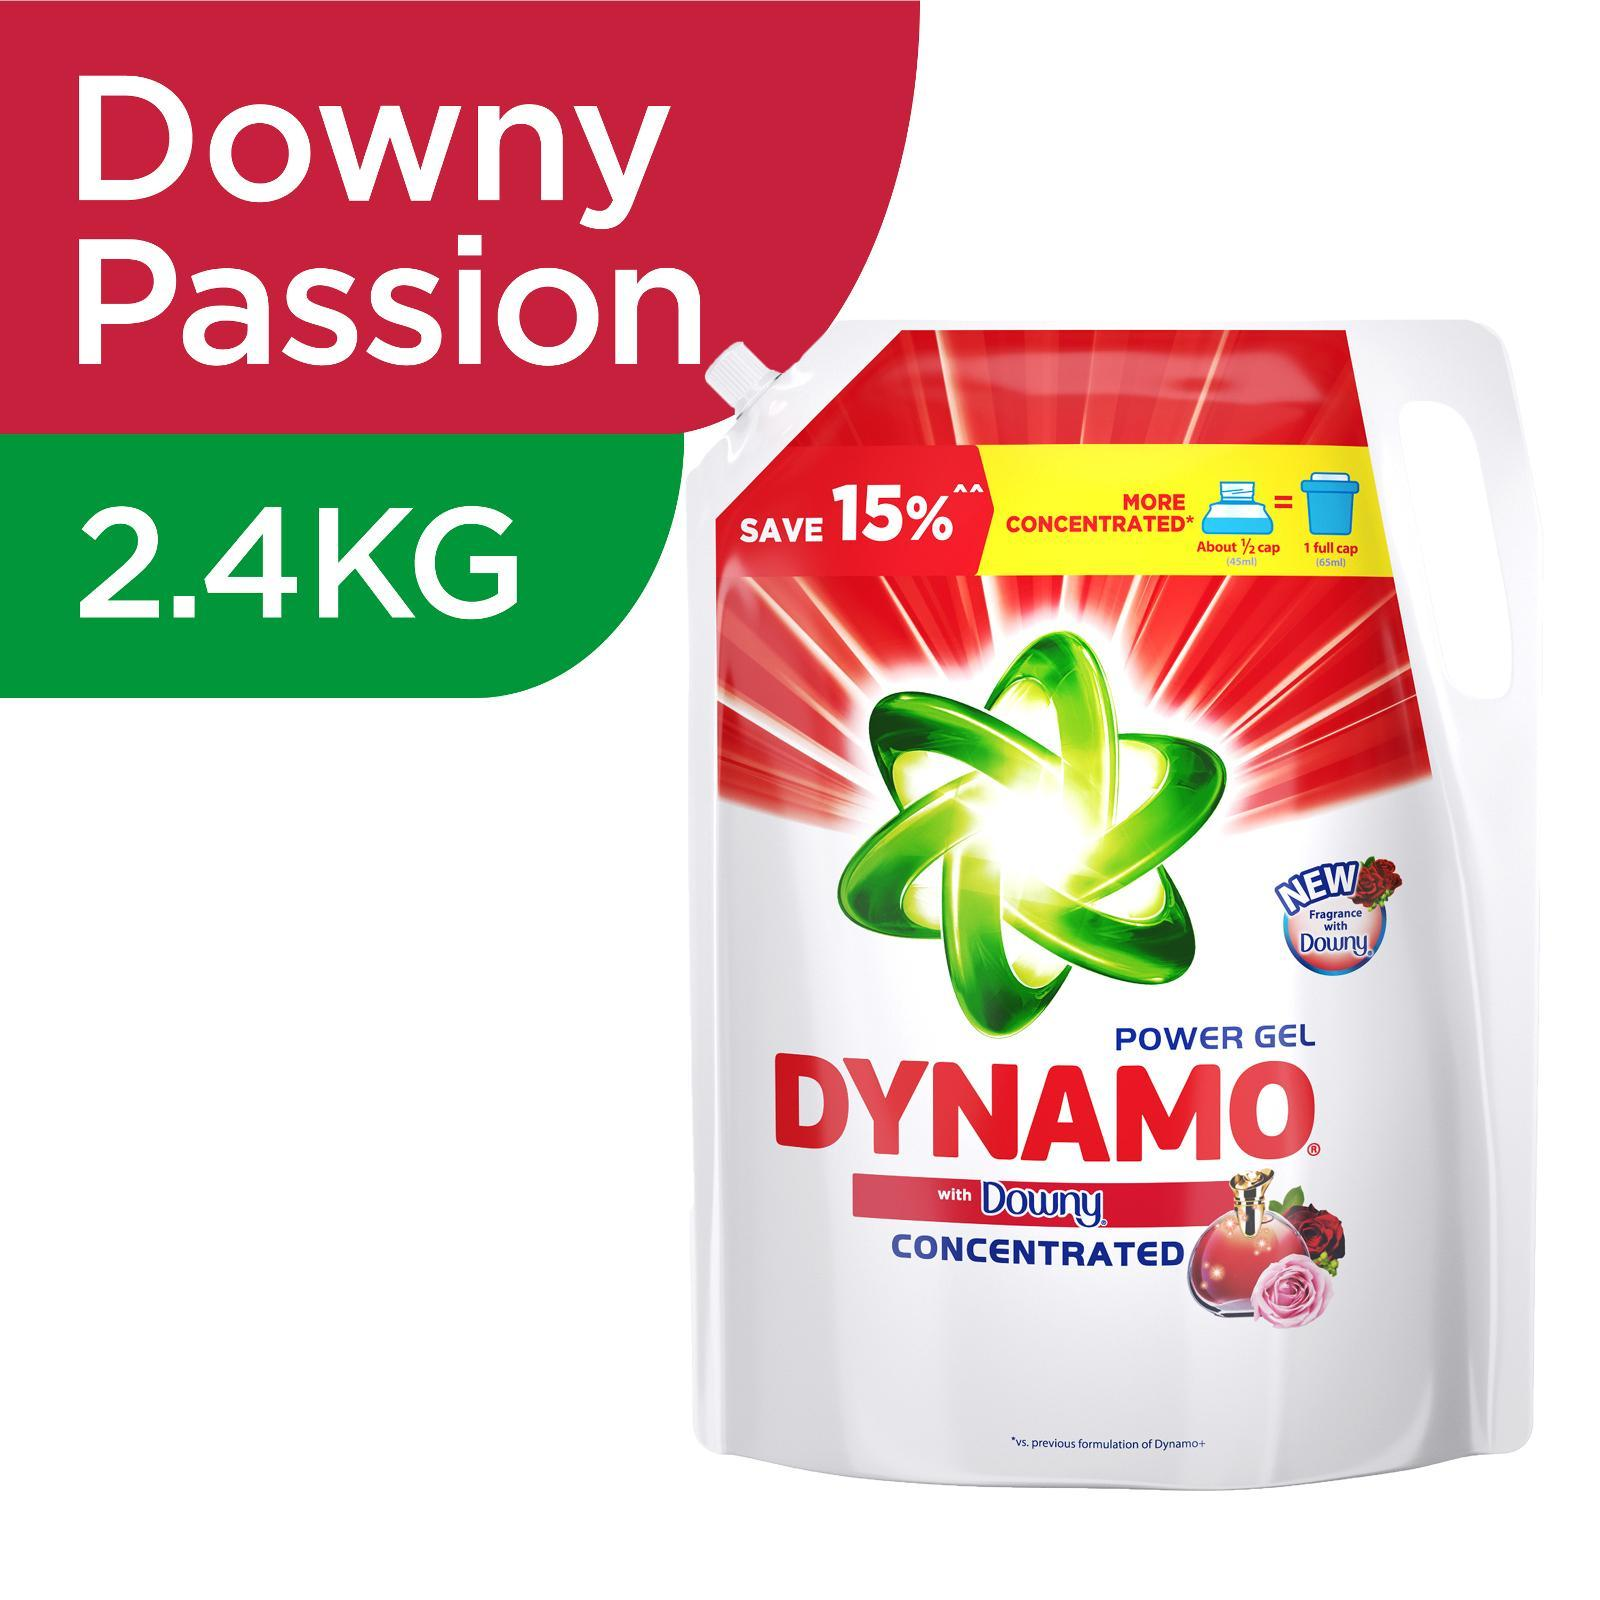 Dynamo Power Gel Freshness Of Downy Laundry Detergent Refill